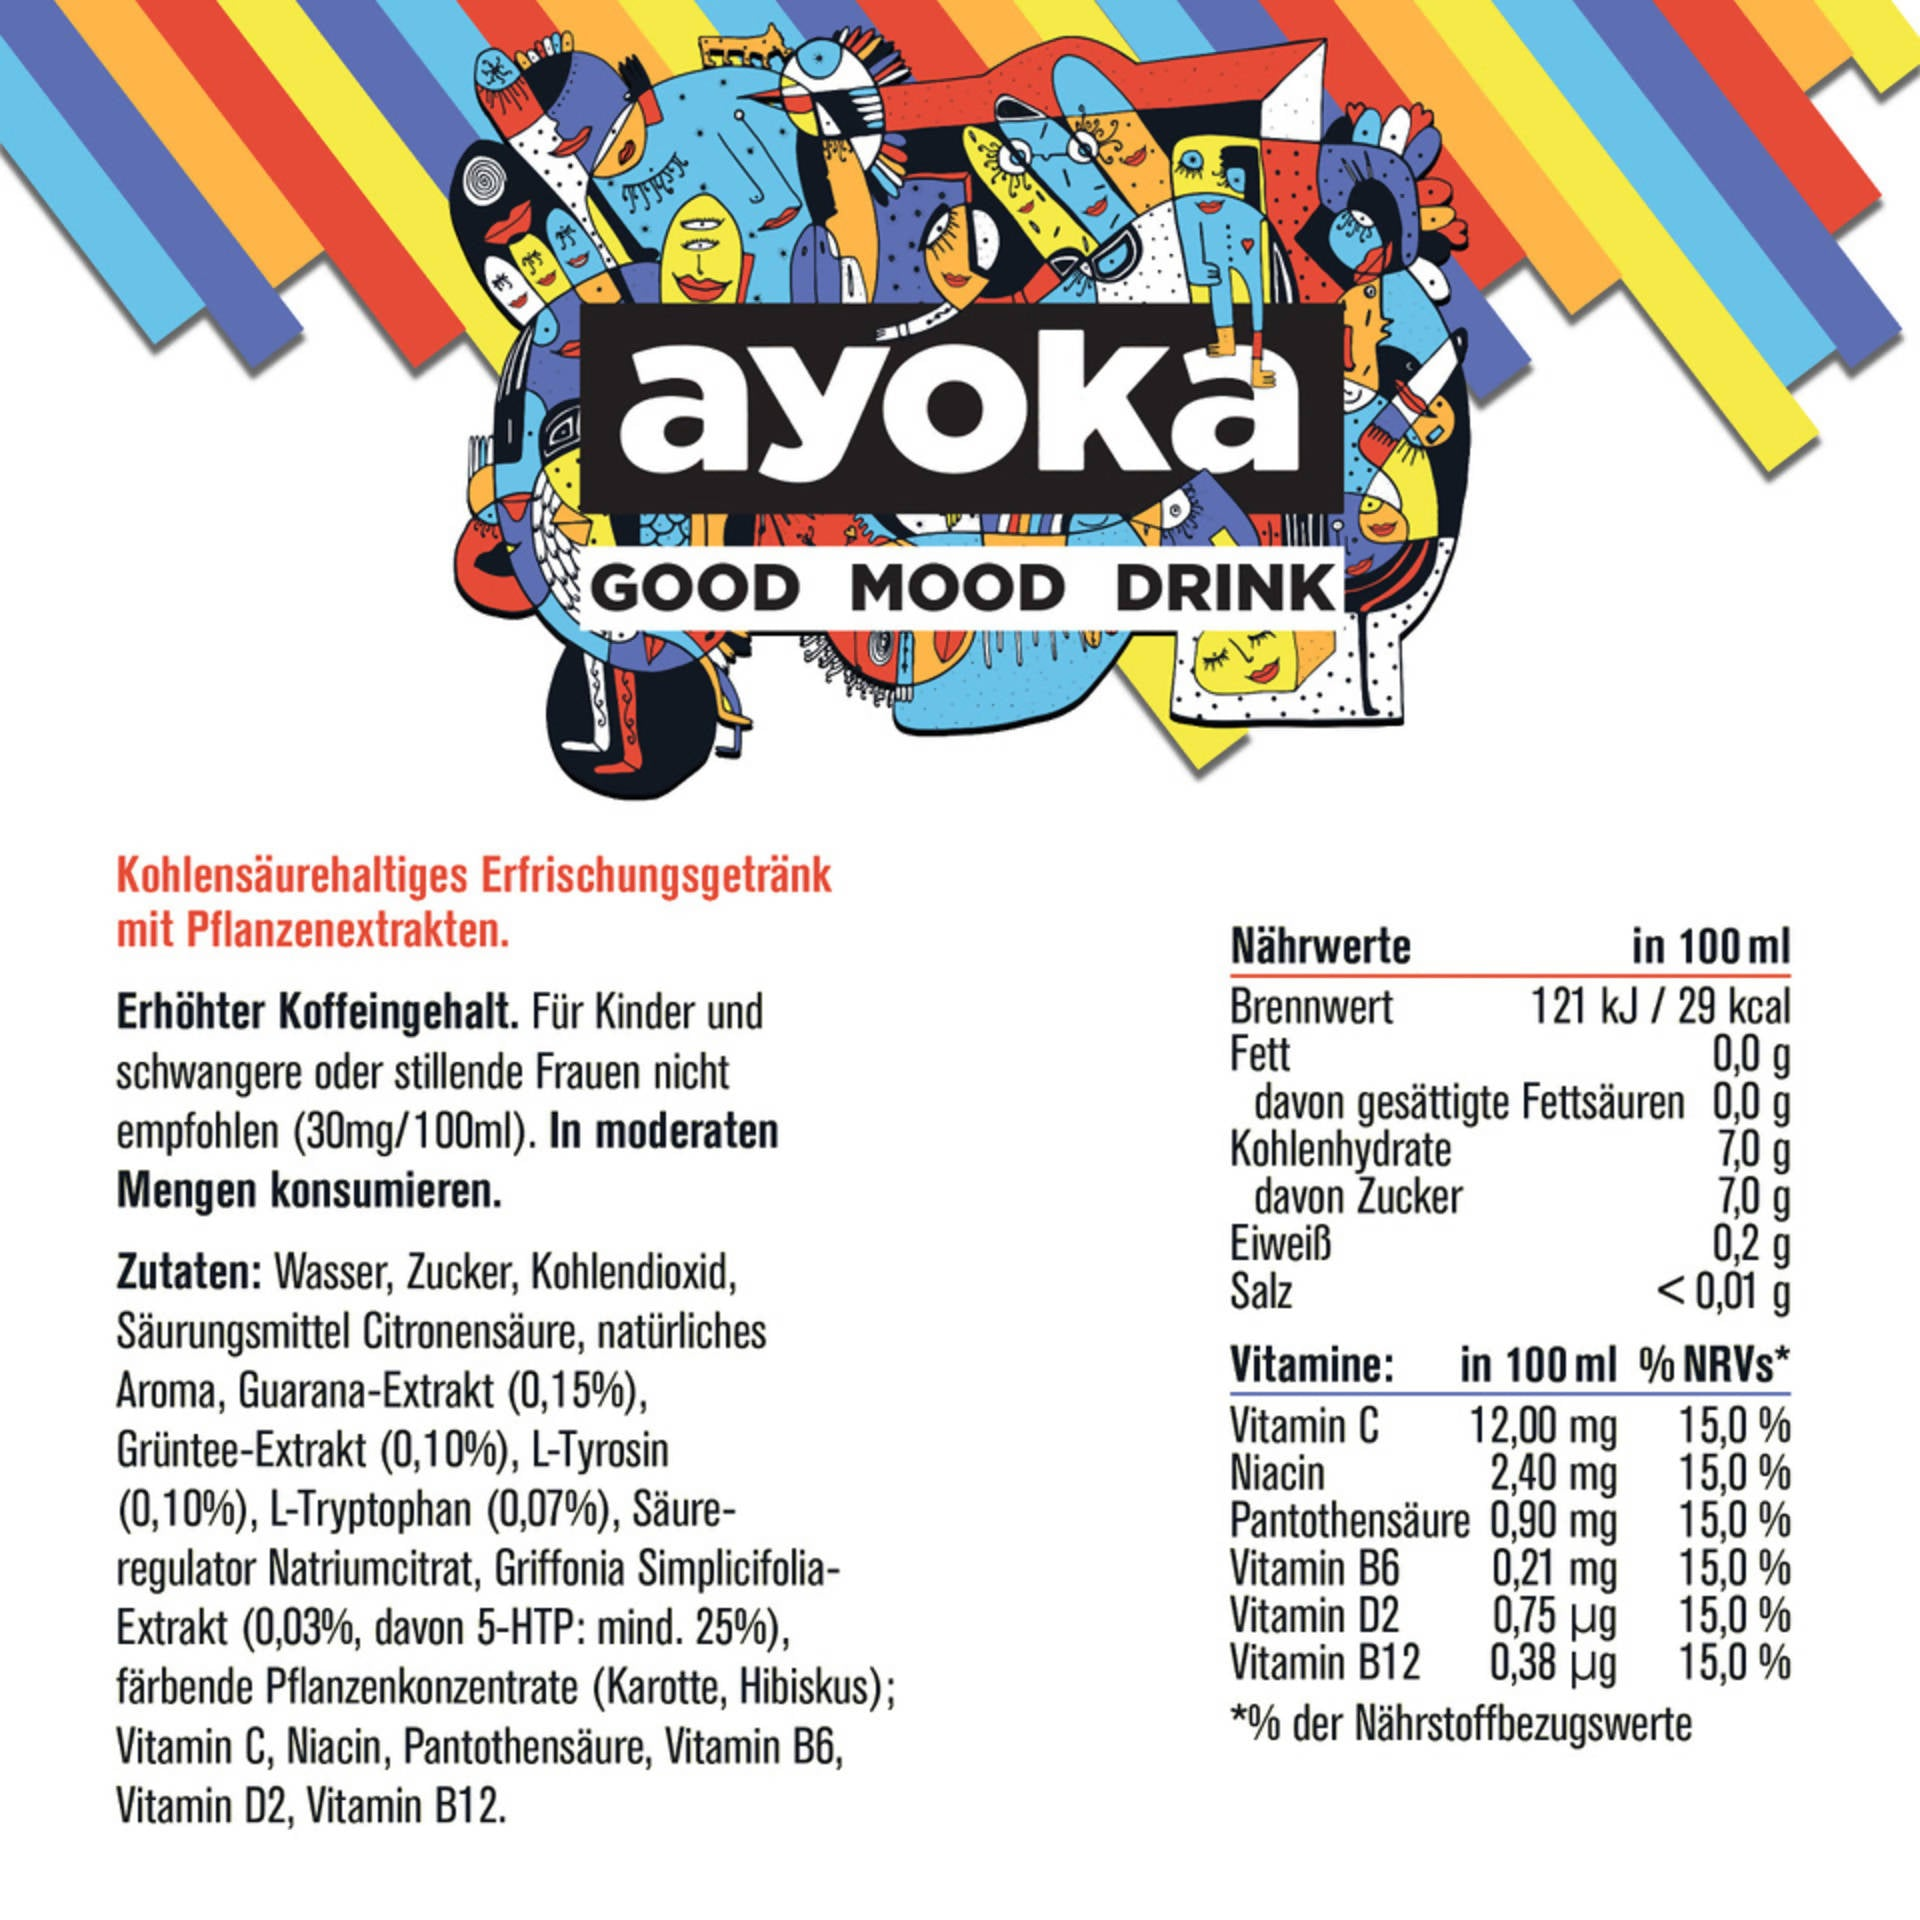 ayoka - Good Mood Drink - (6x250ml)